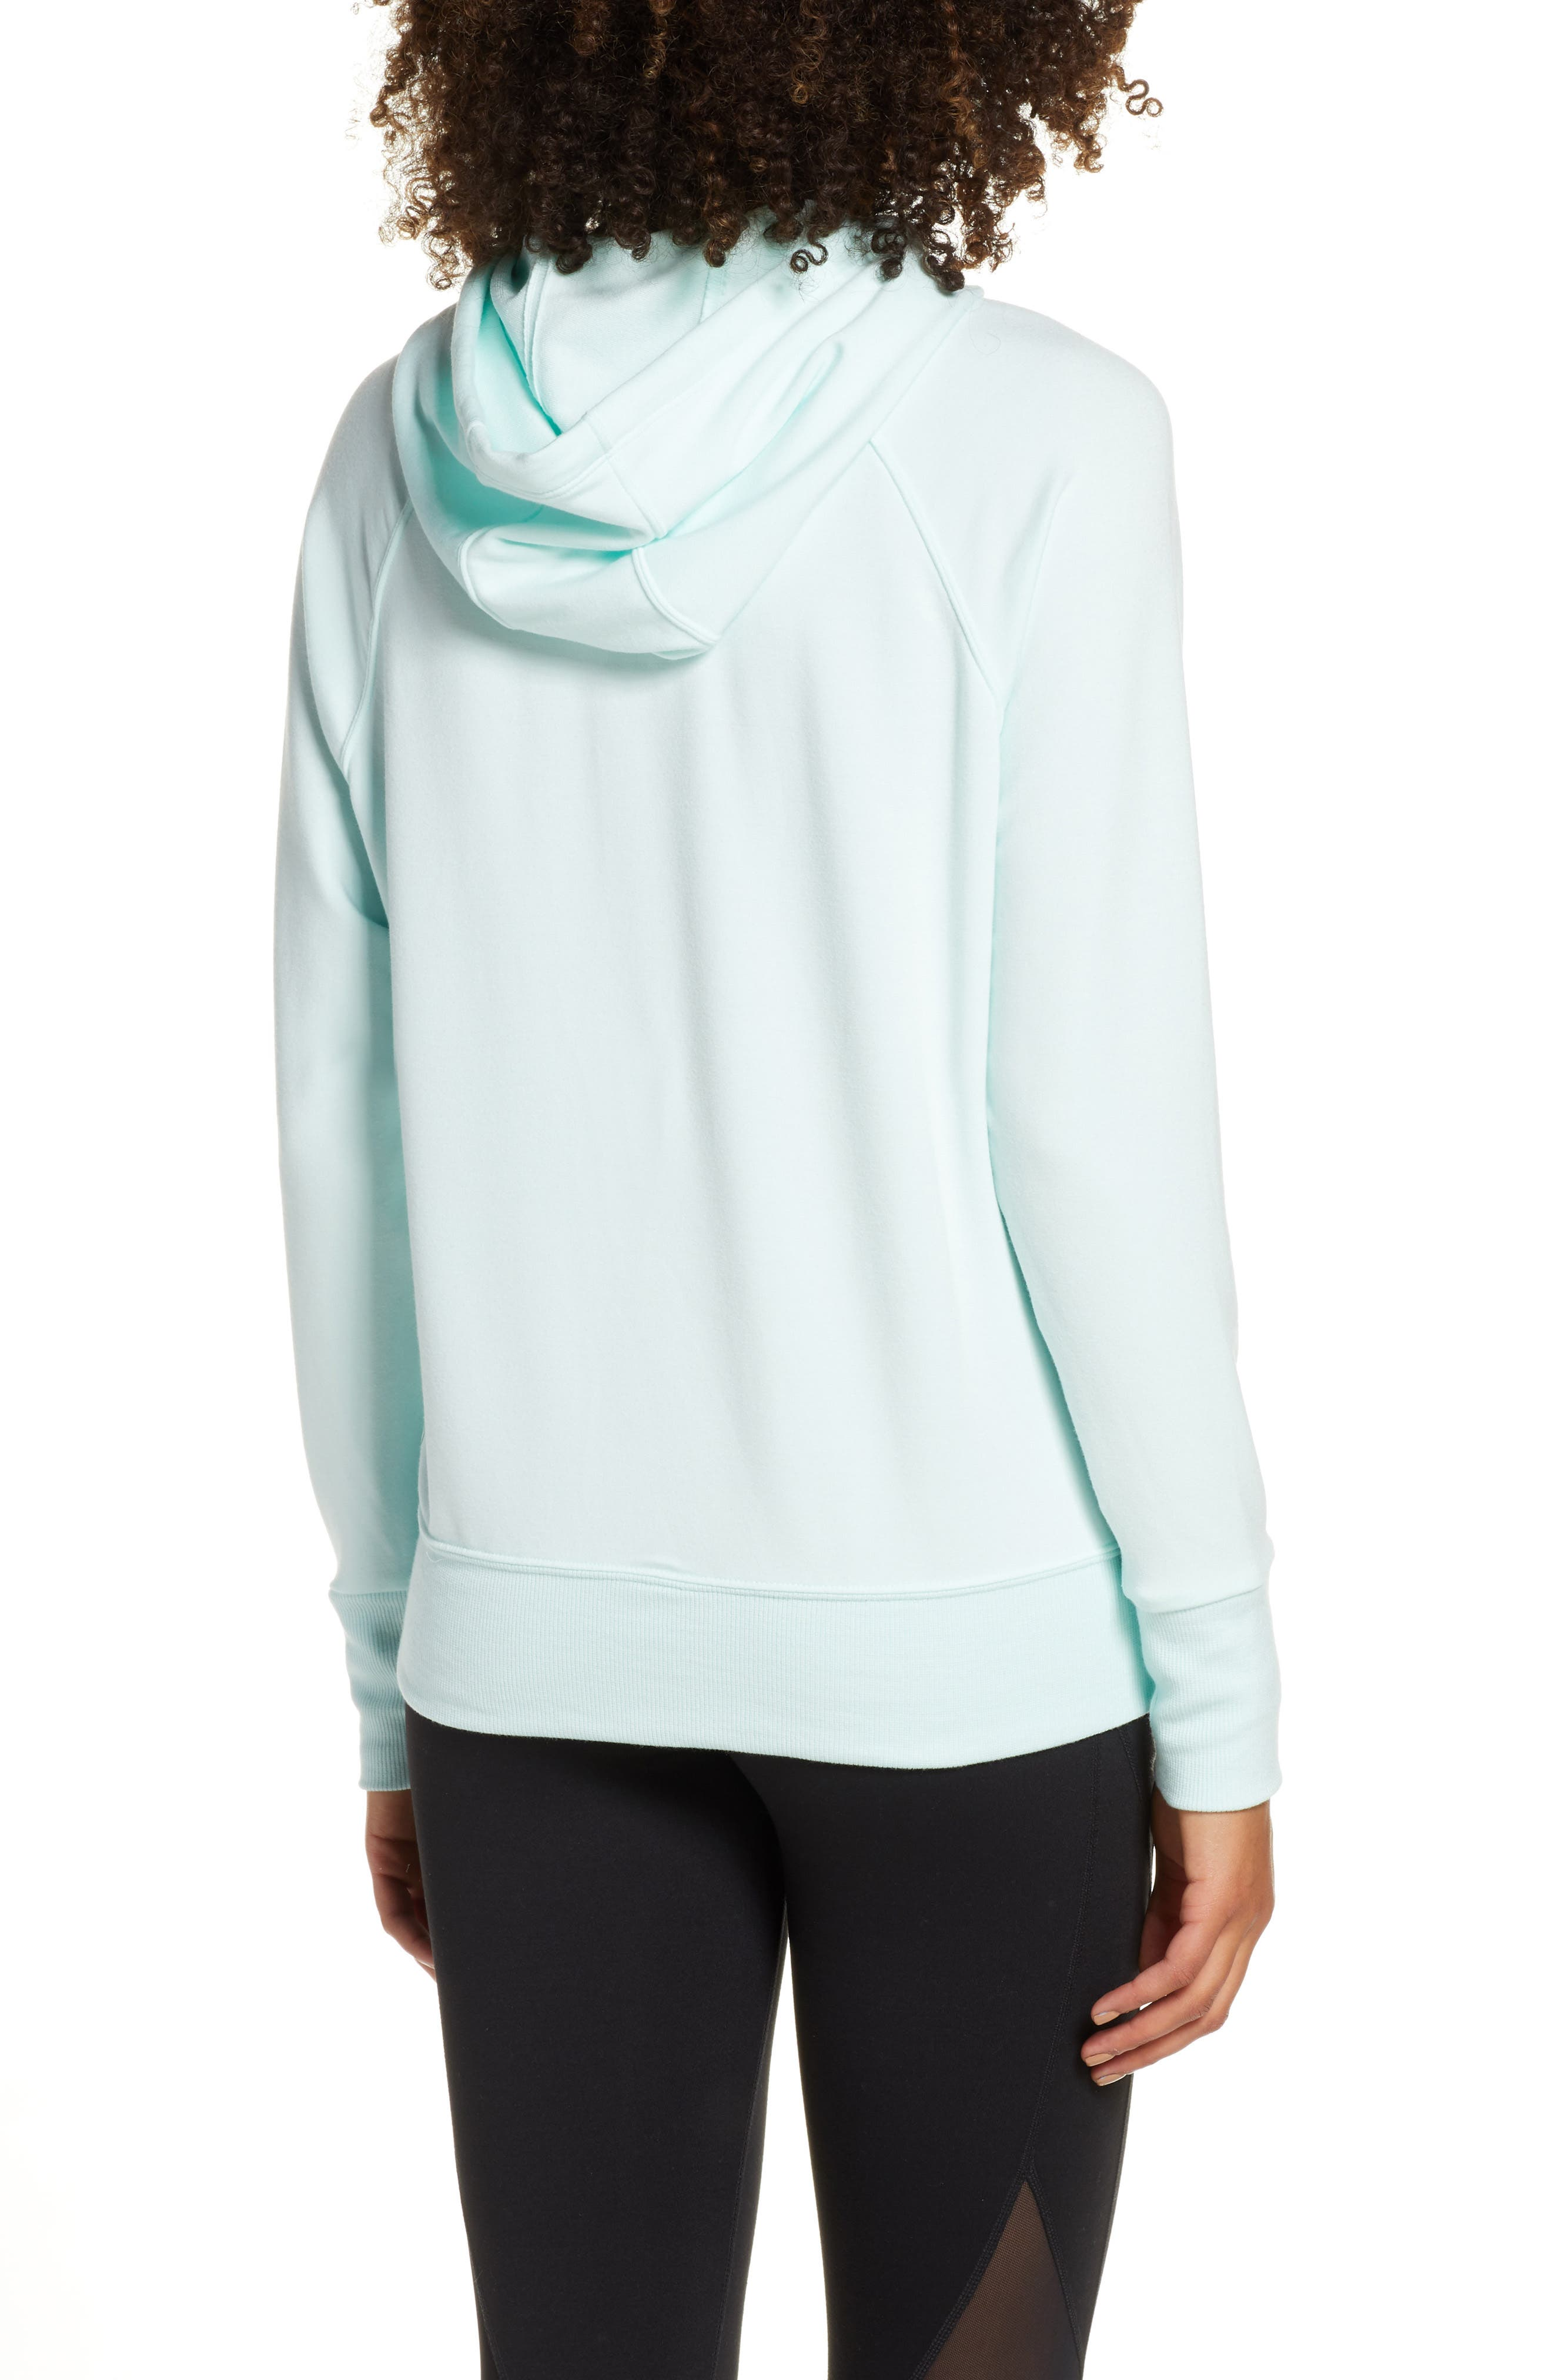 817eb9b1f52f Women's Sweatshirts & Hoodies Clothing | Nordstrom